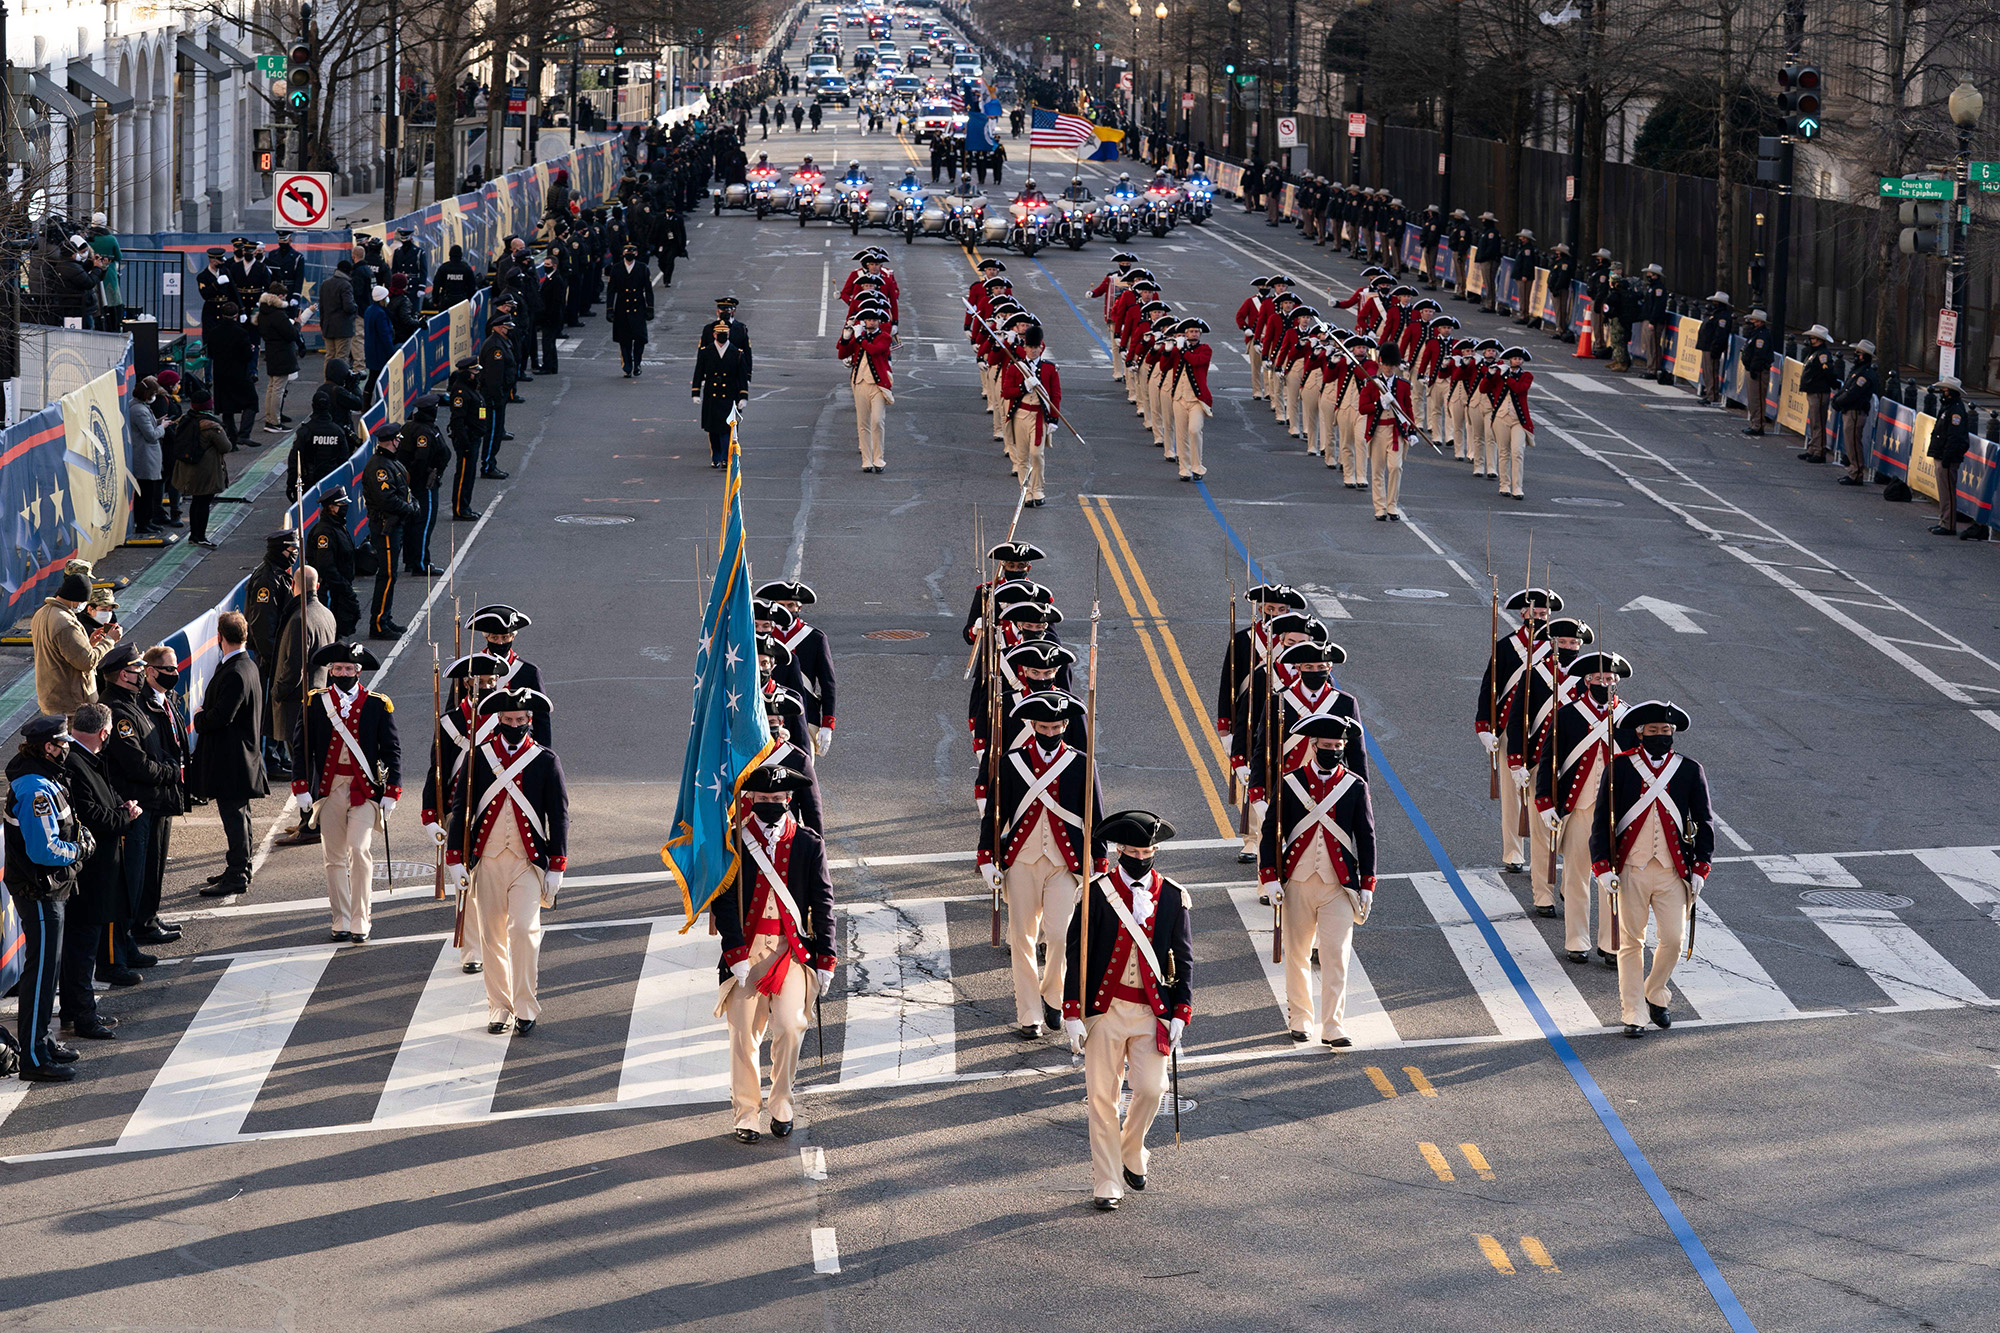 Members of the military march on 15th Street towards the White House during a presidential escort to the White House following President Joe Biden taking the oath of office in Washington on Jan. 20, 2021. (Jose Luis Magana/Pool, AFP via Getty Images)